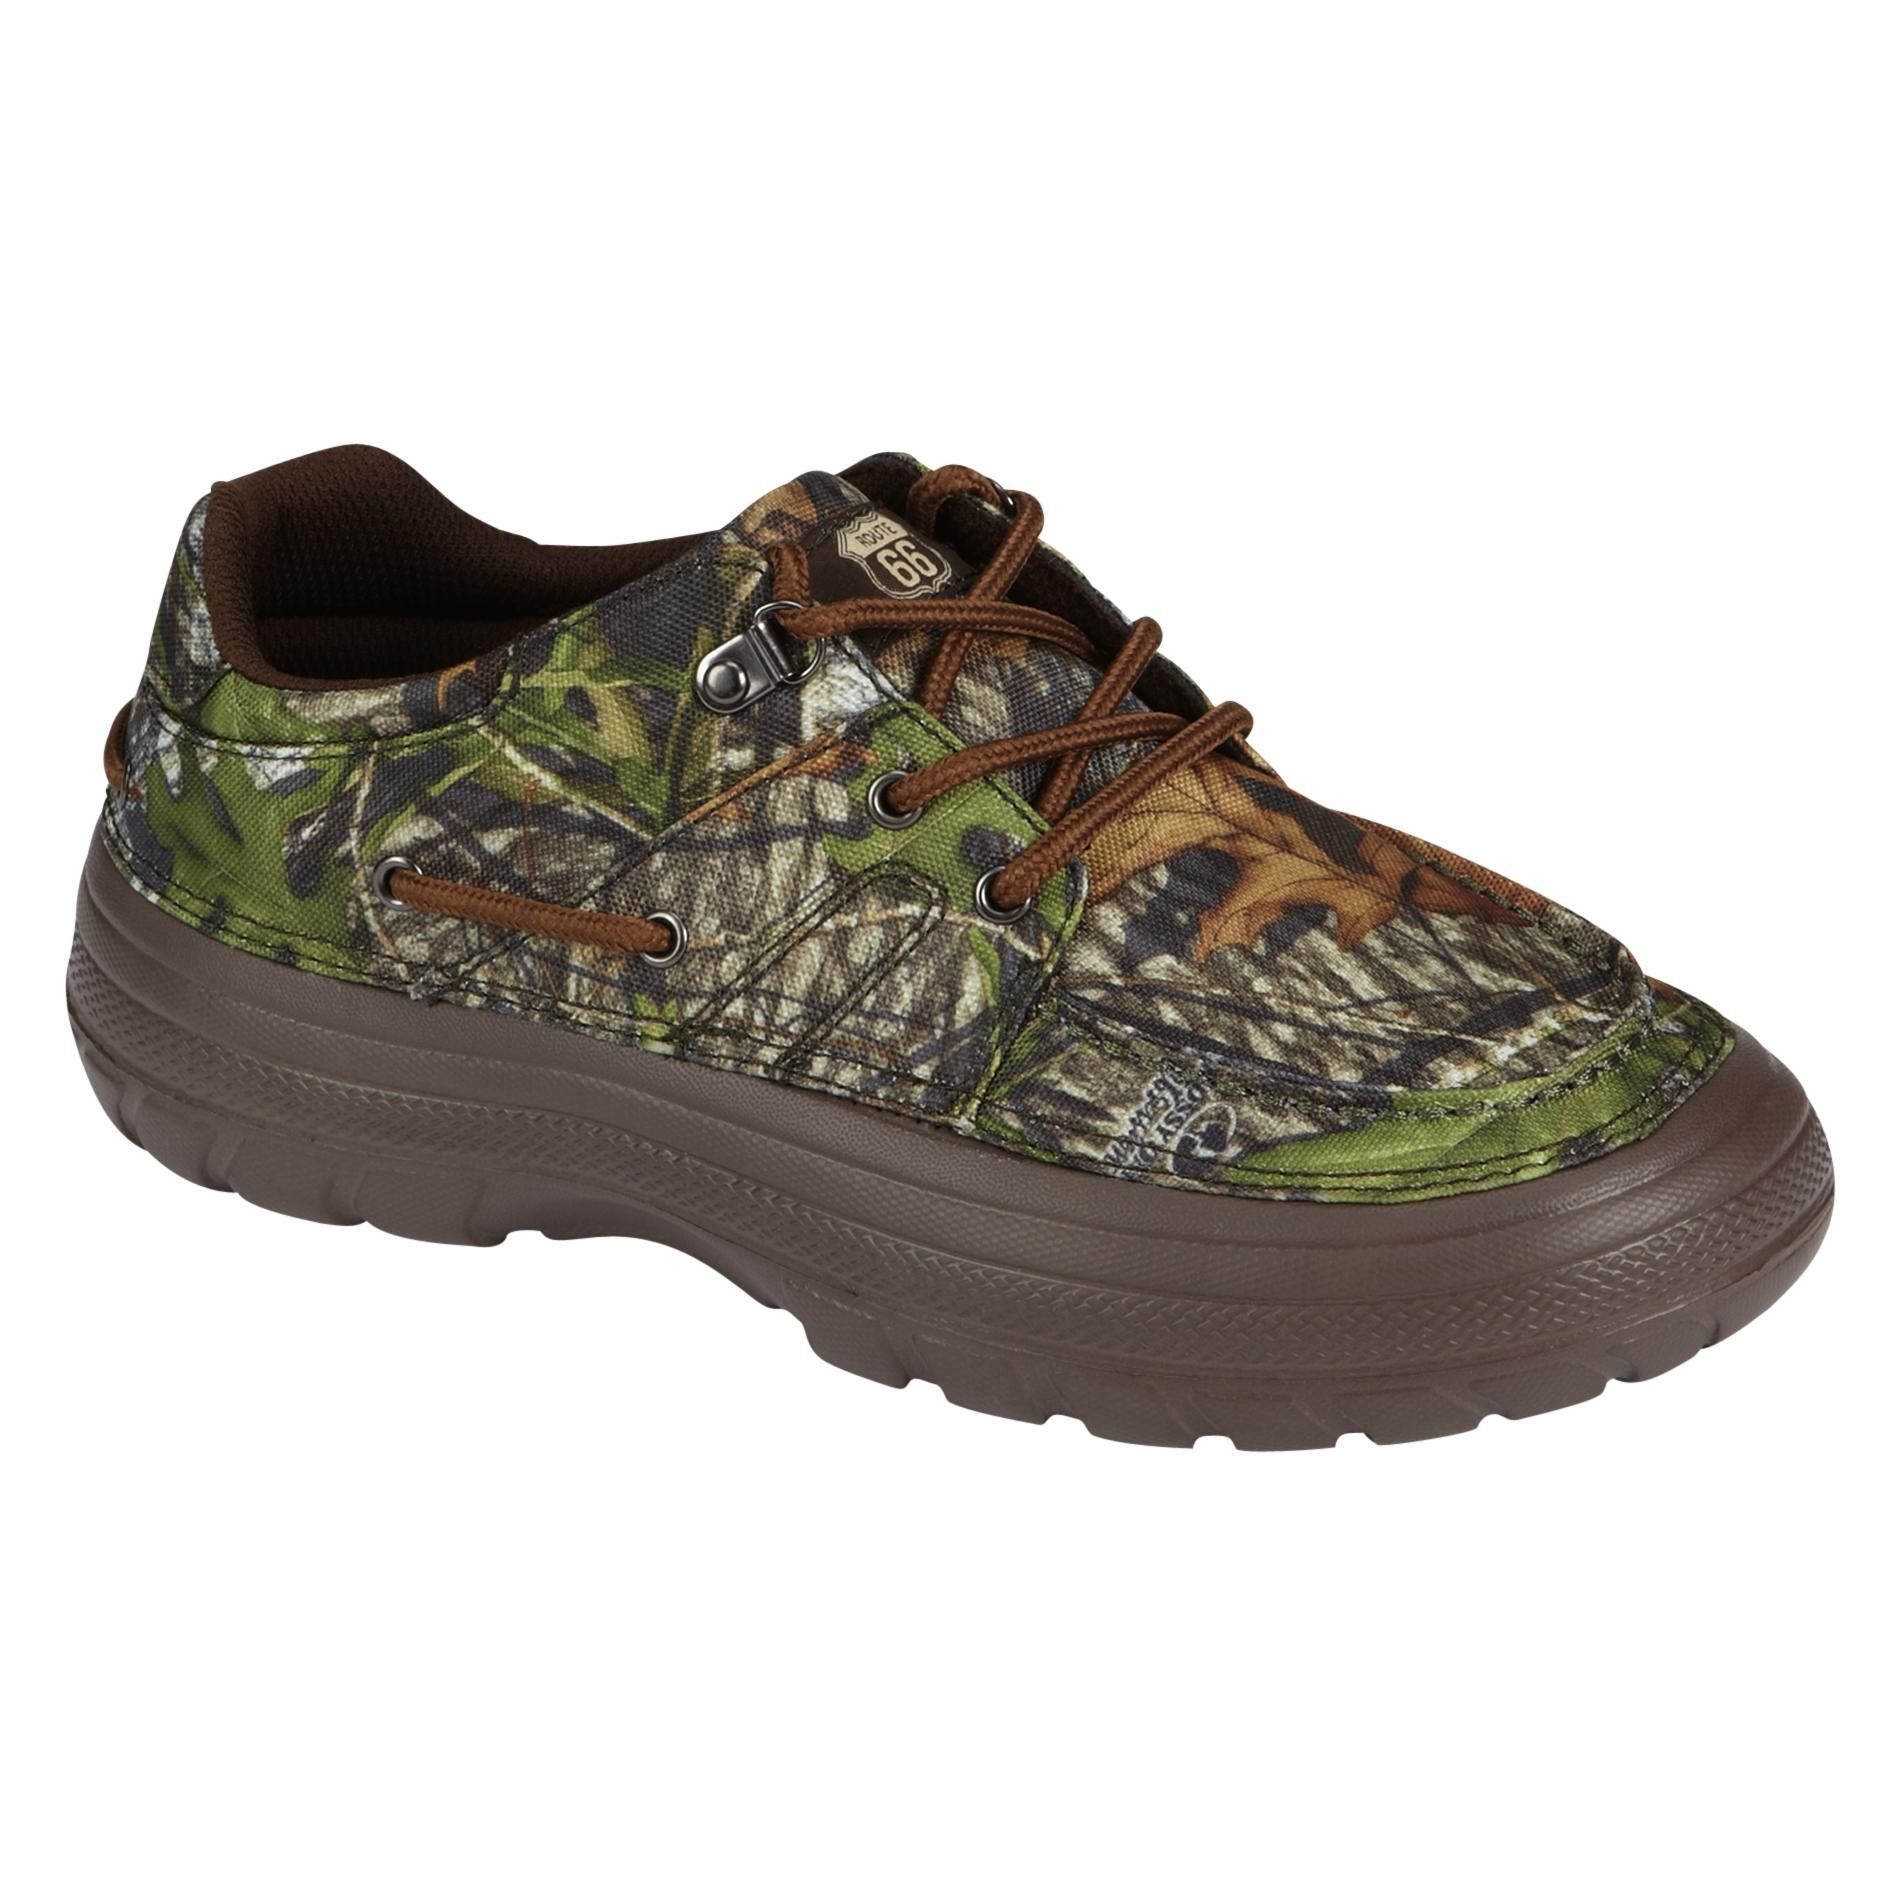 Men's James Canvas Boat Shoe - Camo